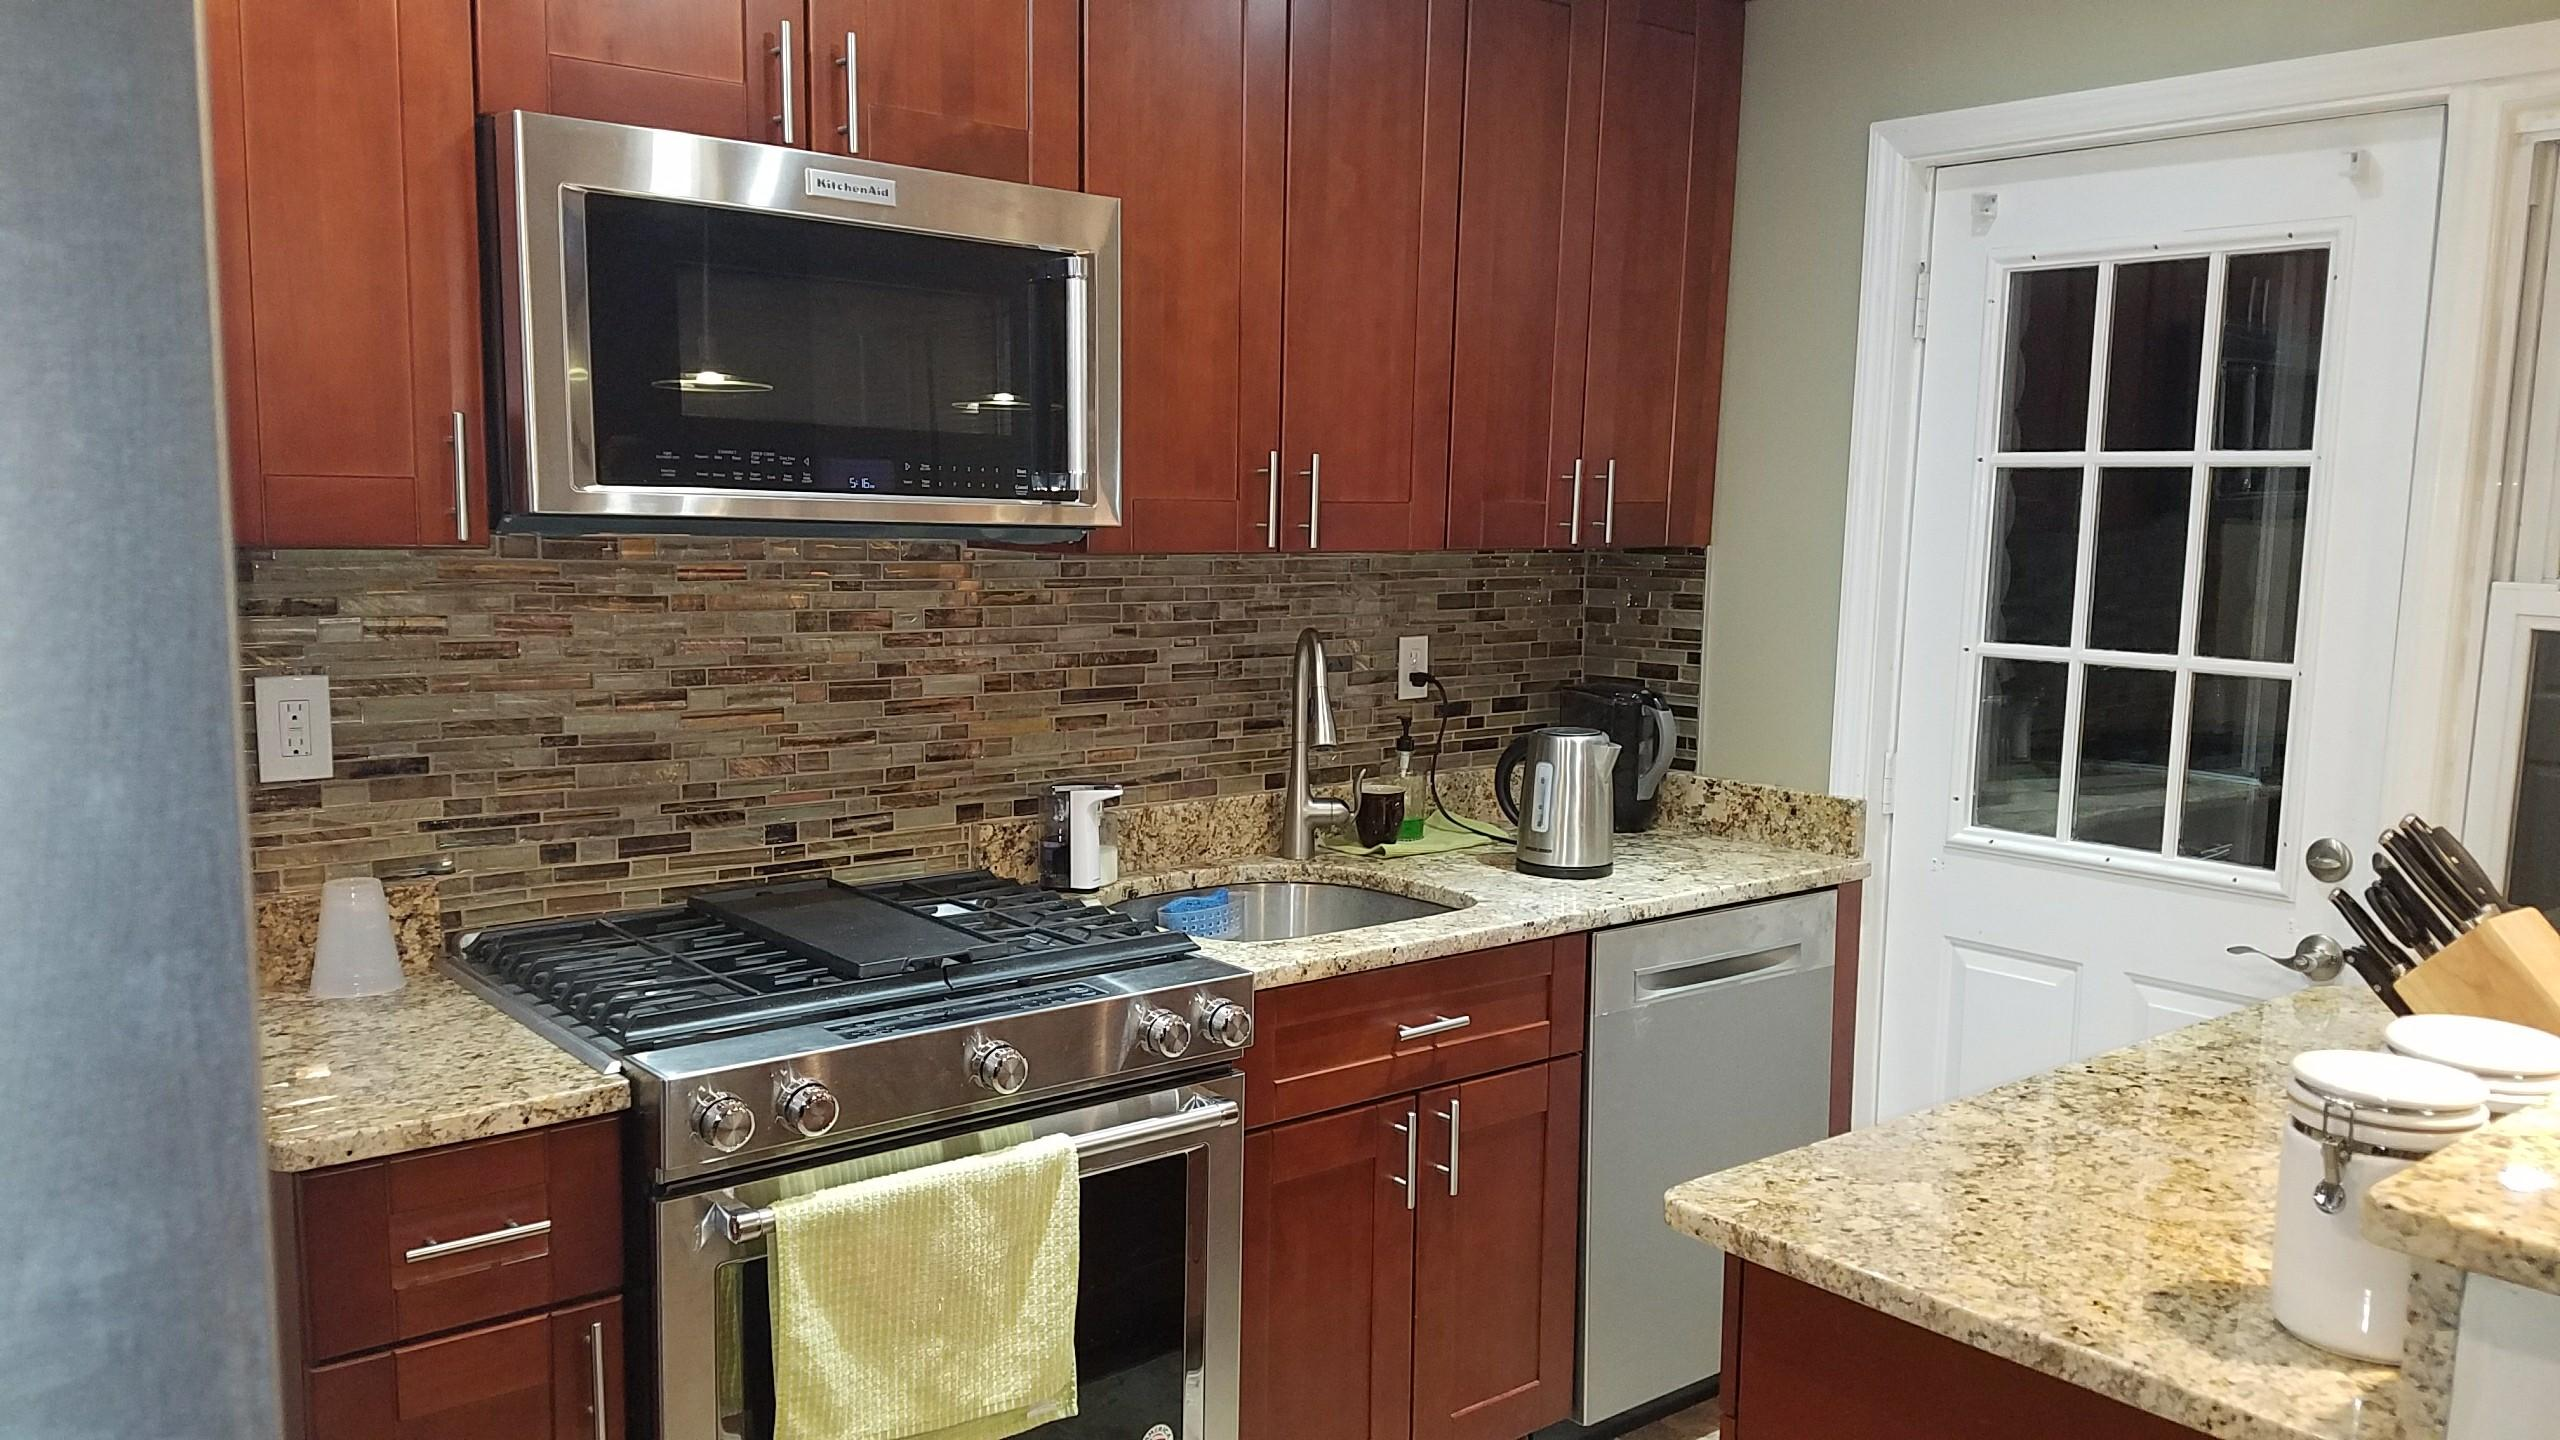 Rms Home Remodeling Is One Of The Top Rated Kitchen Renovation Contractors In Central New Jersey We Employ Skilled Licensed Artisans That Are Capable Of